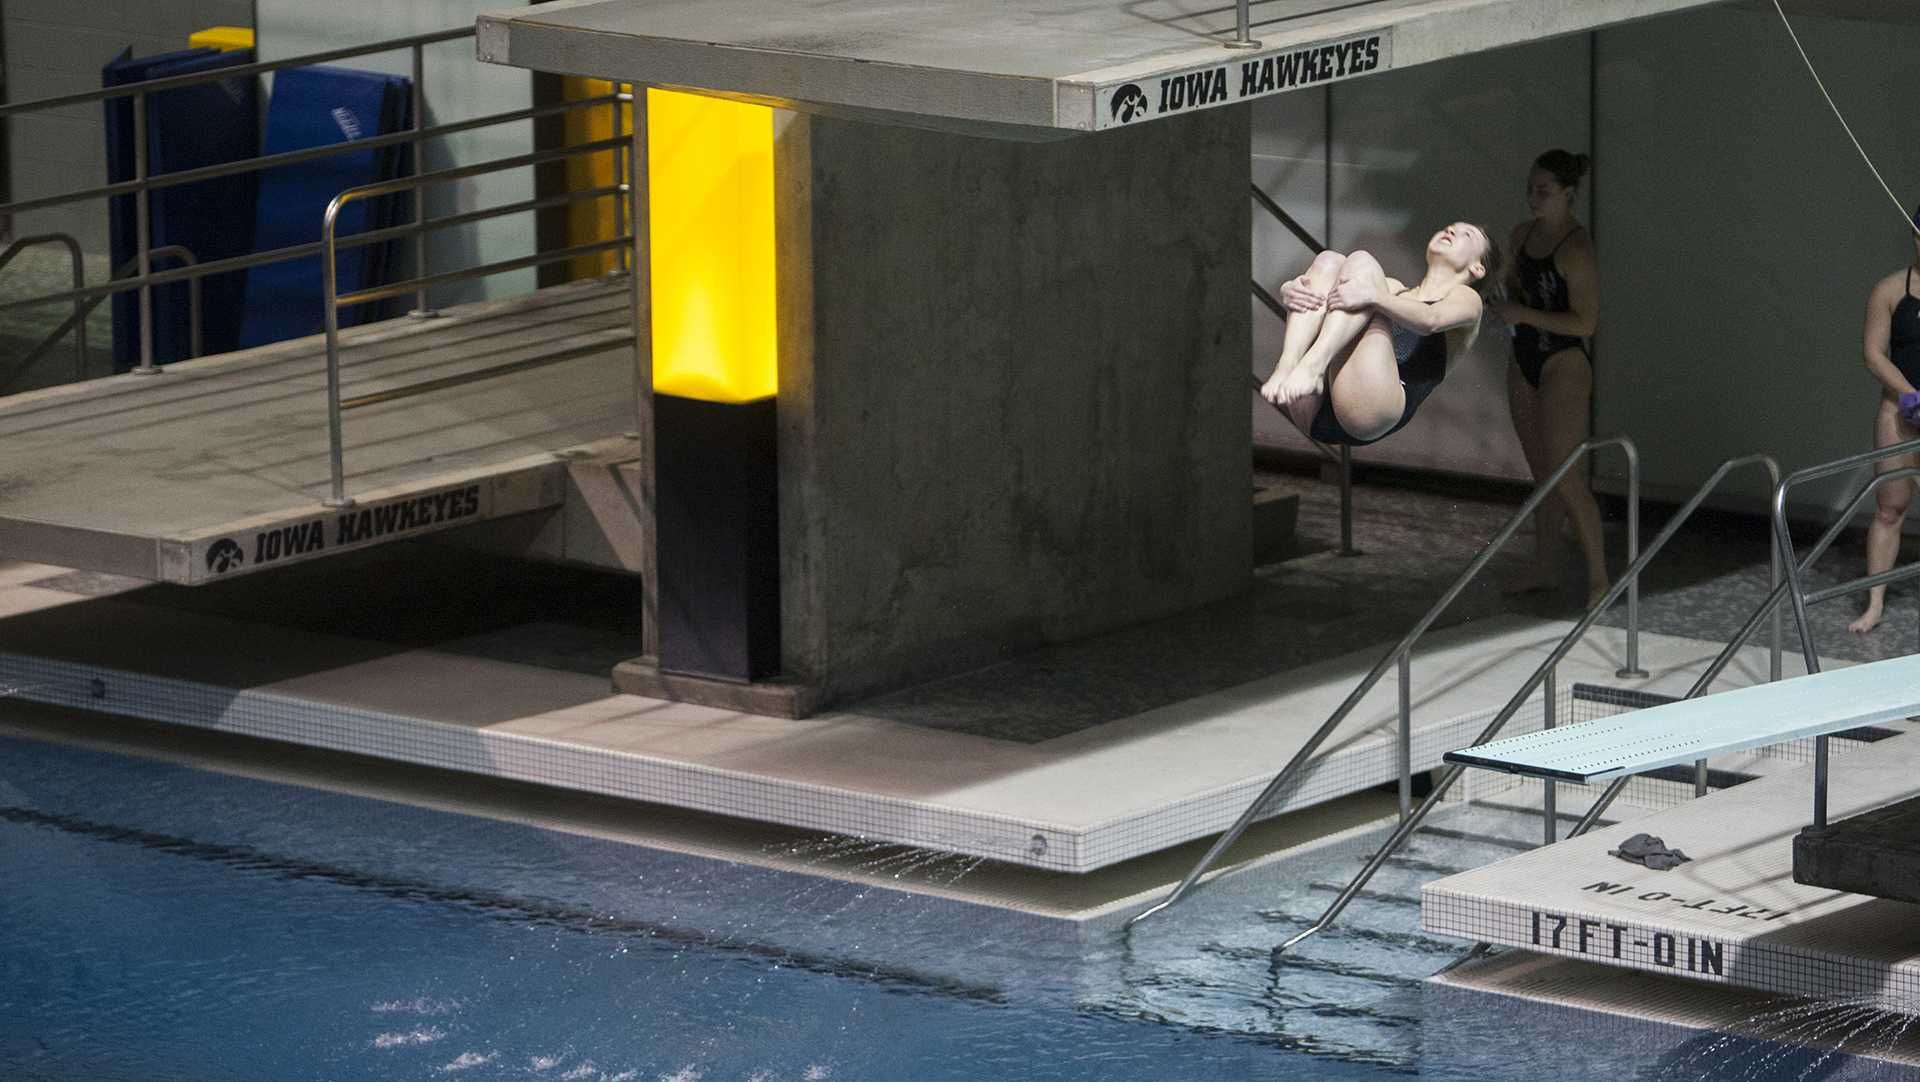 A diver competes in an event during a swimming and diving meet against Northern Iowa and Western Illinois on Friday, Feb. 3, 2017. The Hawkeyes defeated Northern Iowa, 147-73, and Western Illinois, 161-49. (The Daily Iowan/Joseph Cress)